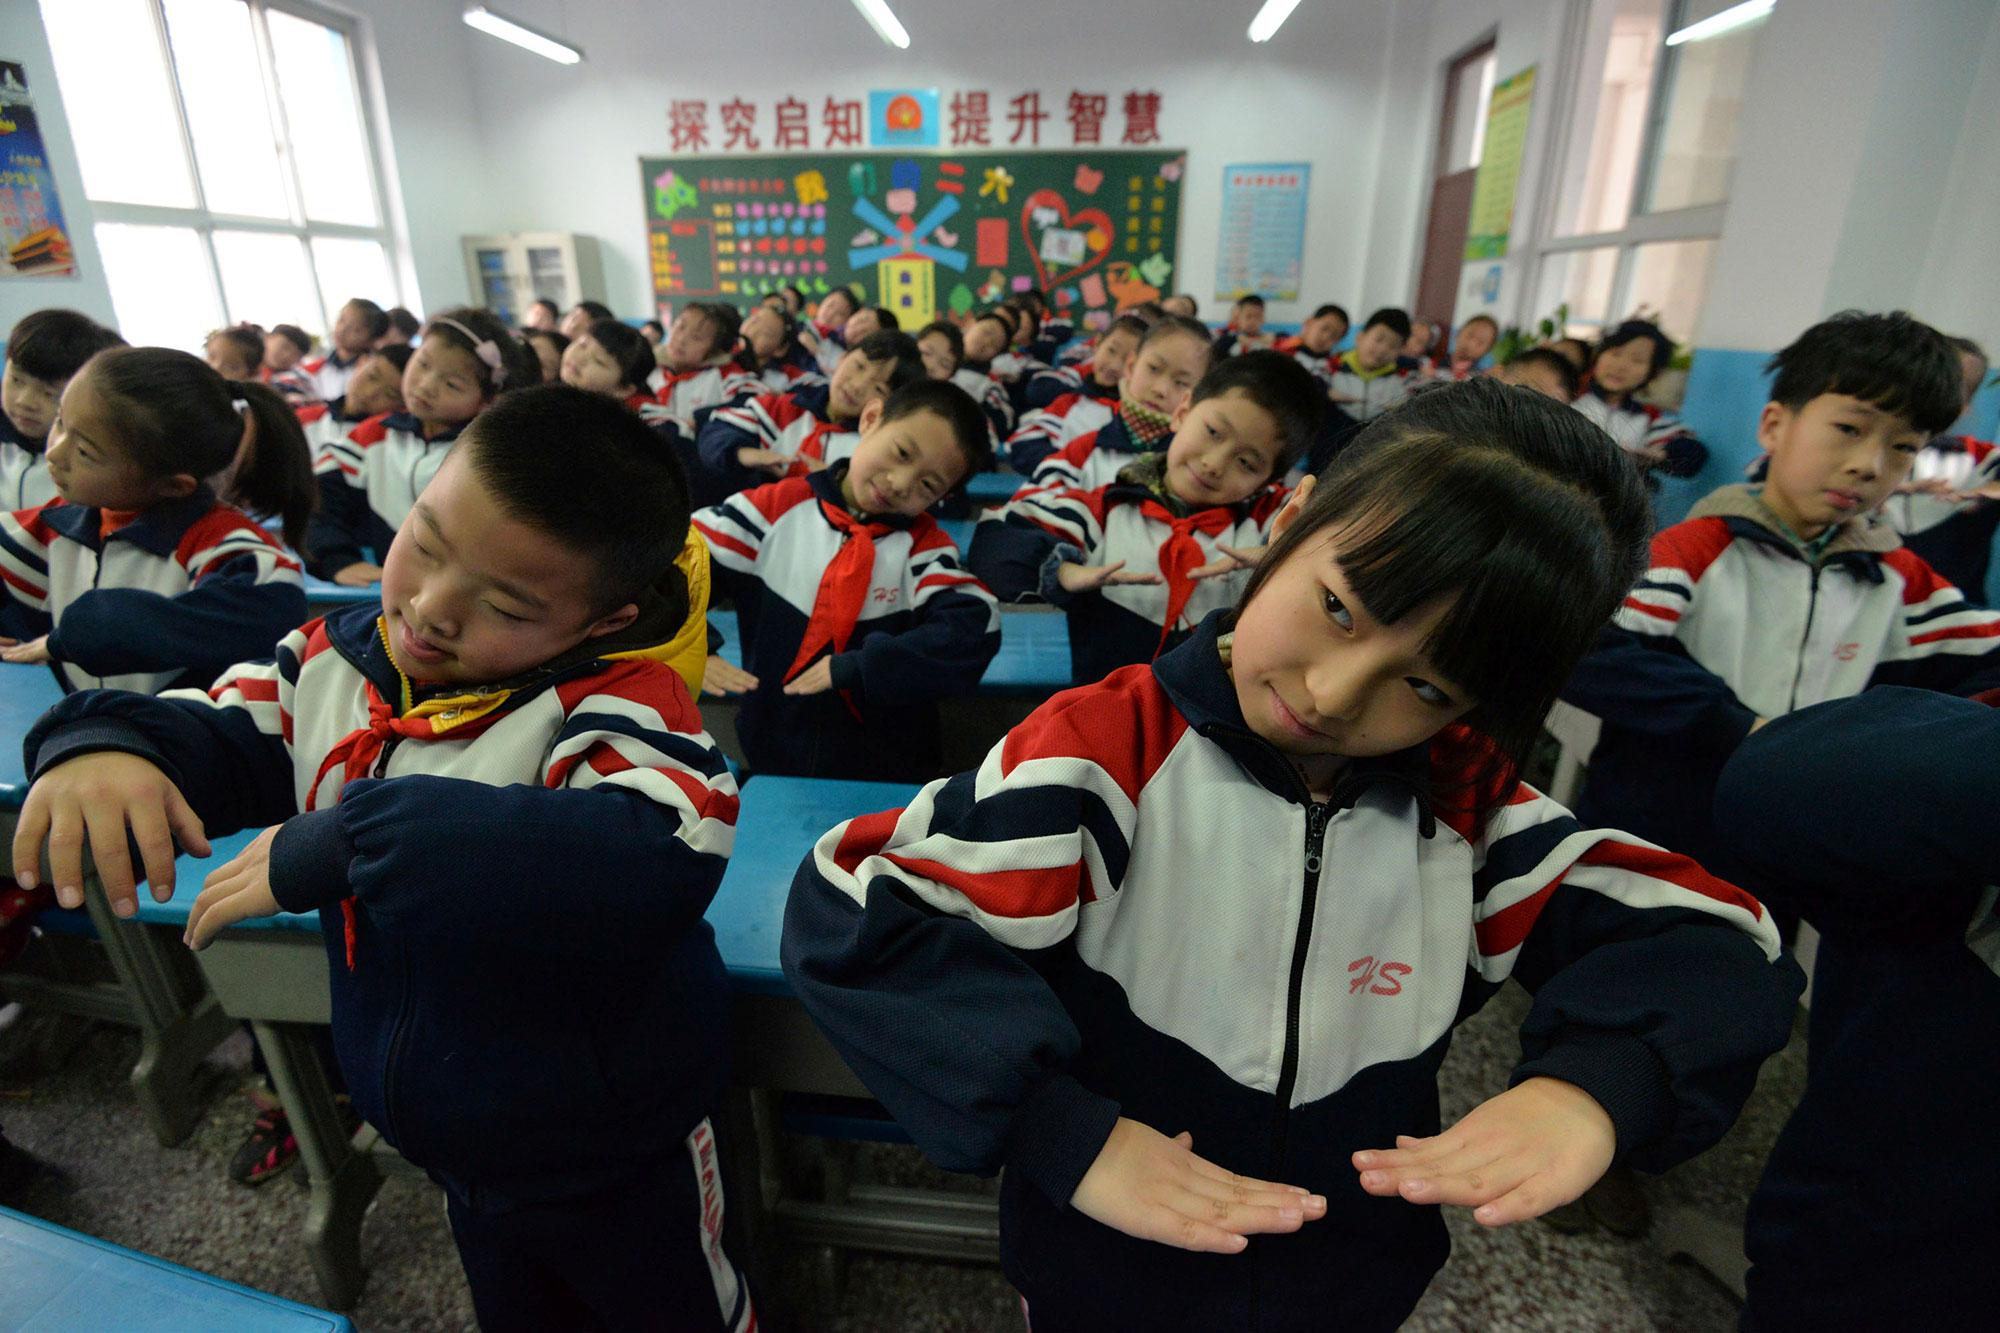 <p>Children exercise indoors during a polluted day in Handan, Hebei province, China on Dec. 19, 2016. (Photo: Stringer/Reuters) </p>